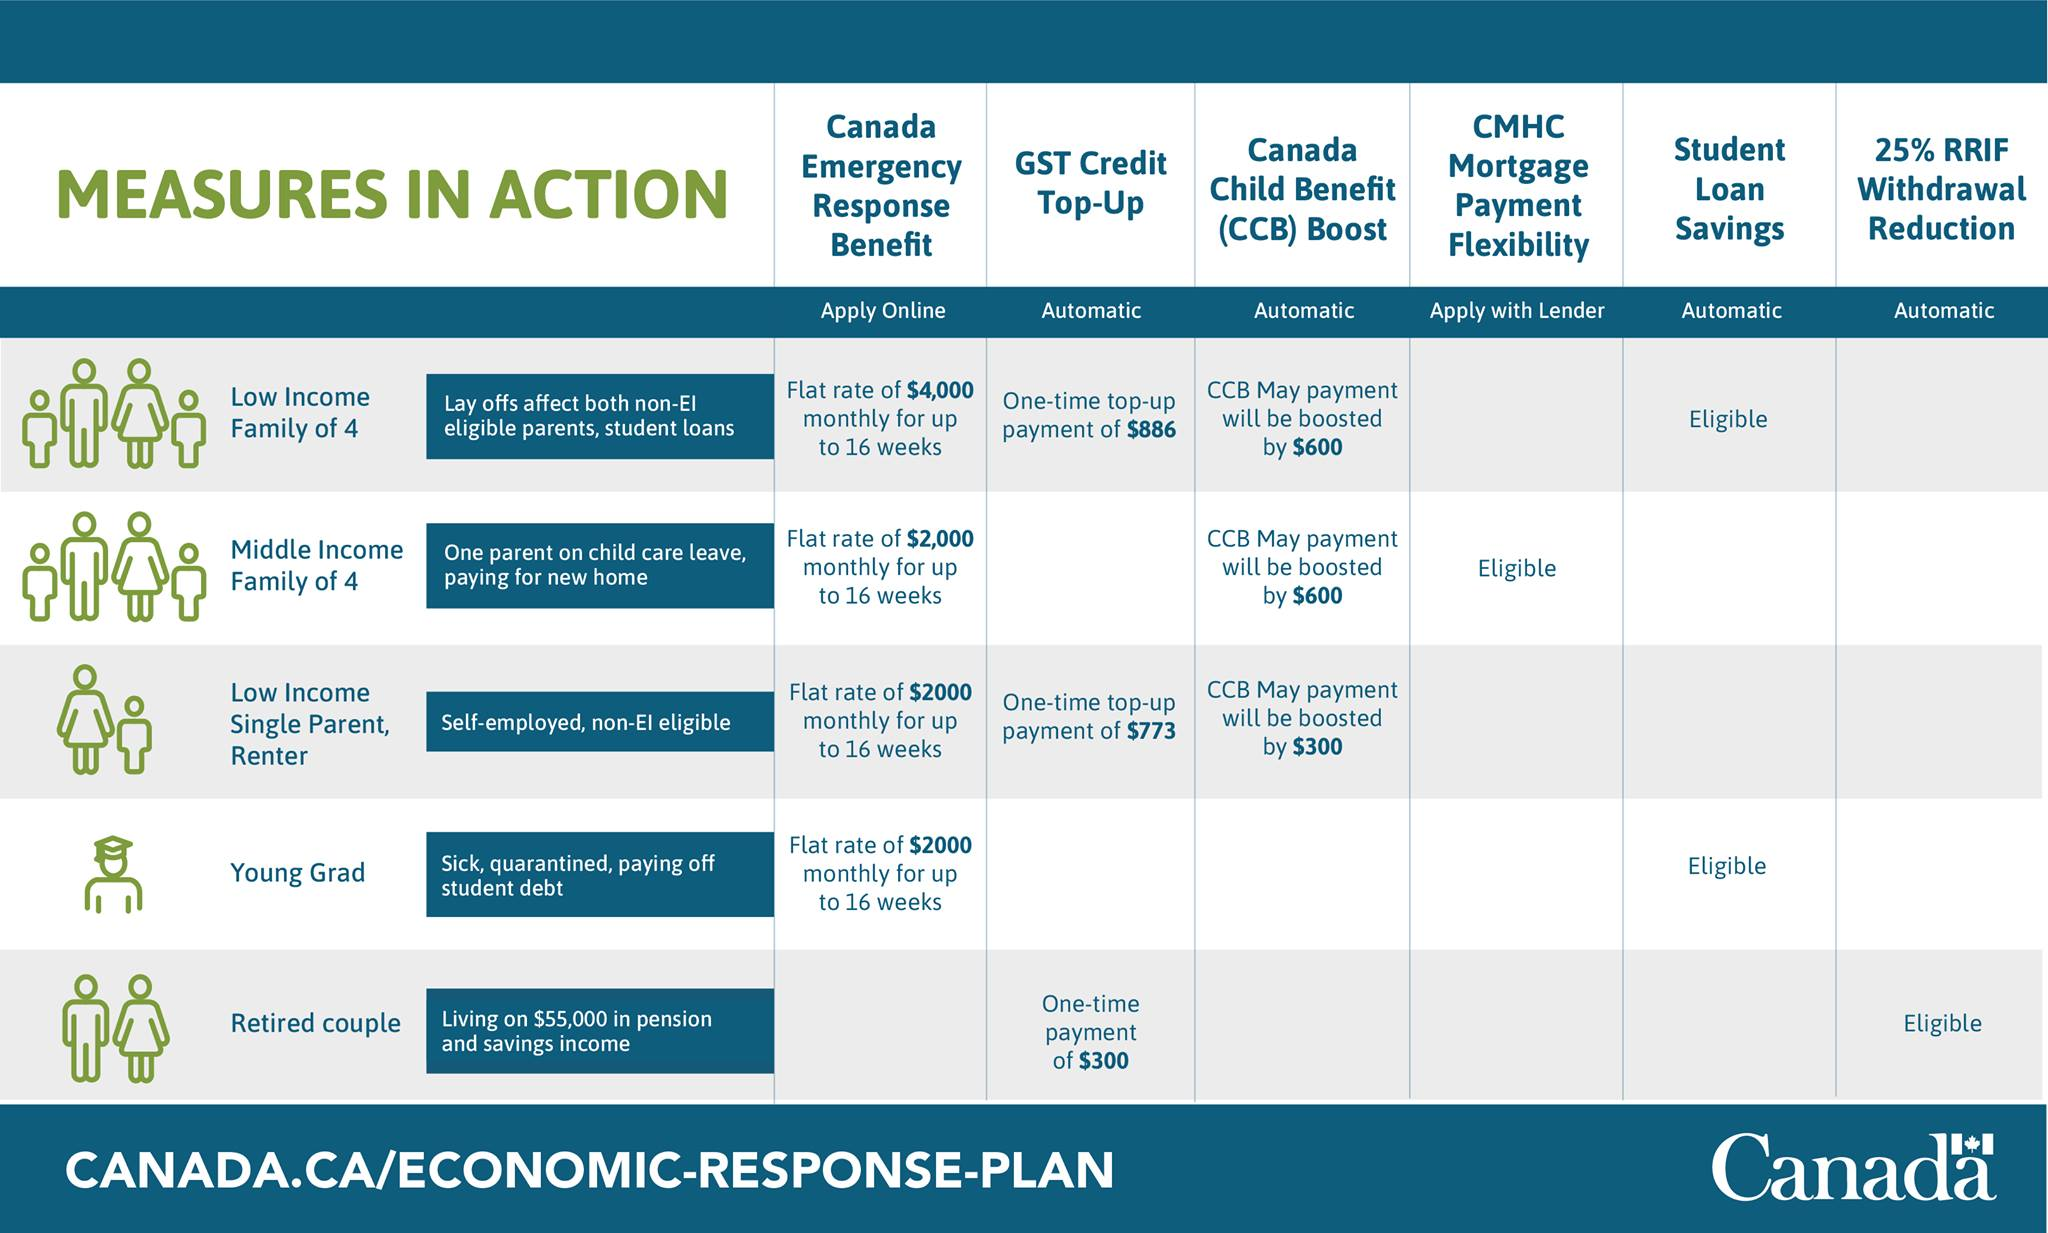 Chart describing various financial supports for Canadian from federal government